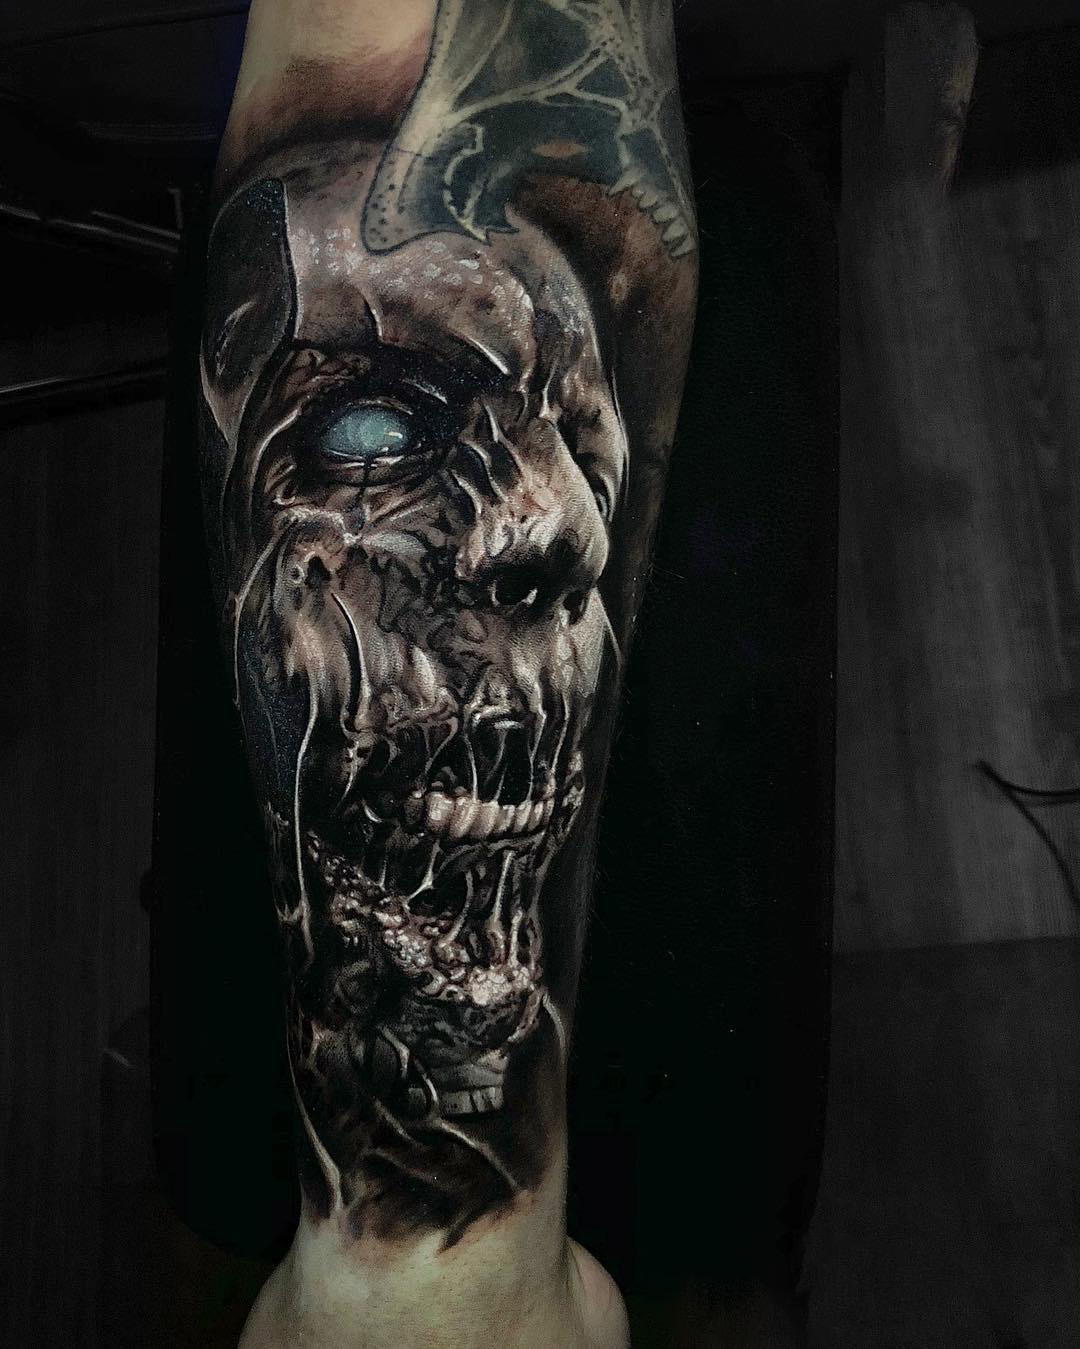 Scary Tattoo - Zombies